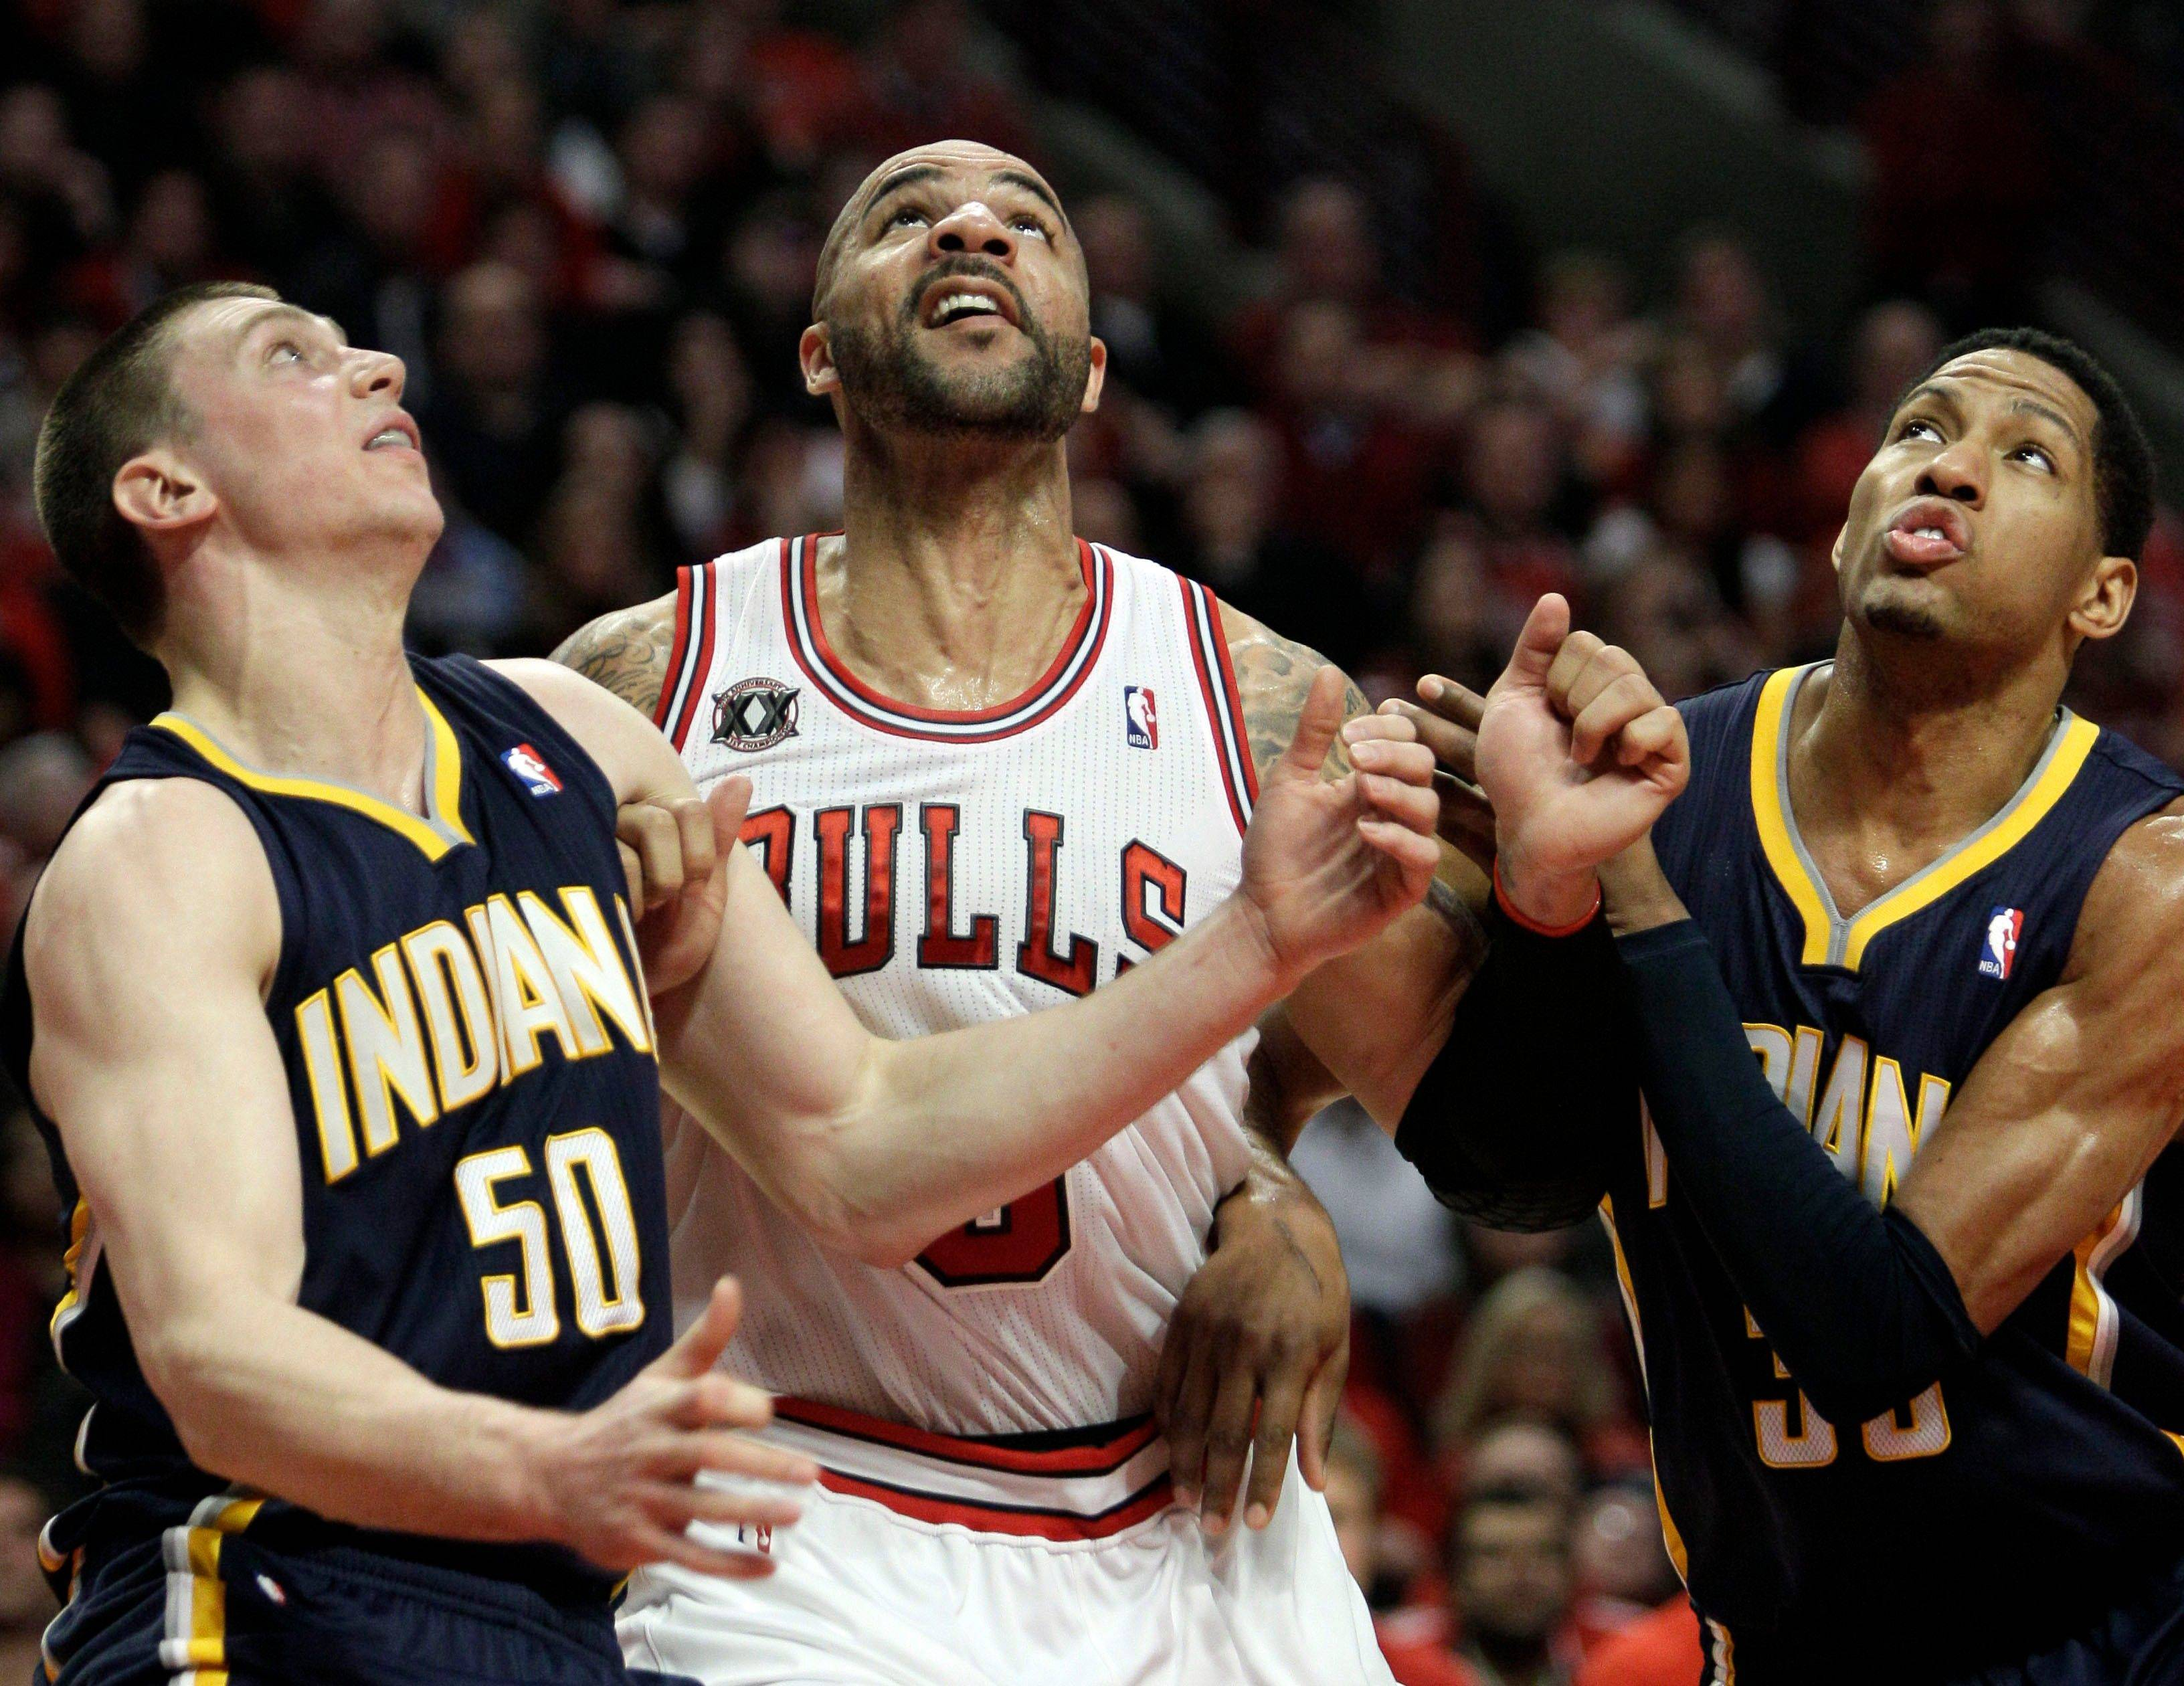 Carlos Boozer, center, looks up as he battles for a rebound against Indiana Pacers' Tyler Hansbrough, left, and Danny Granger during the quarter in Game 2 of a first-round NBA playoff basketball series in Chicago, Monday, April 18, 2011. The Bulls won 96-90.